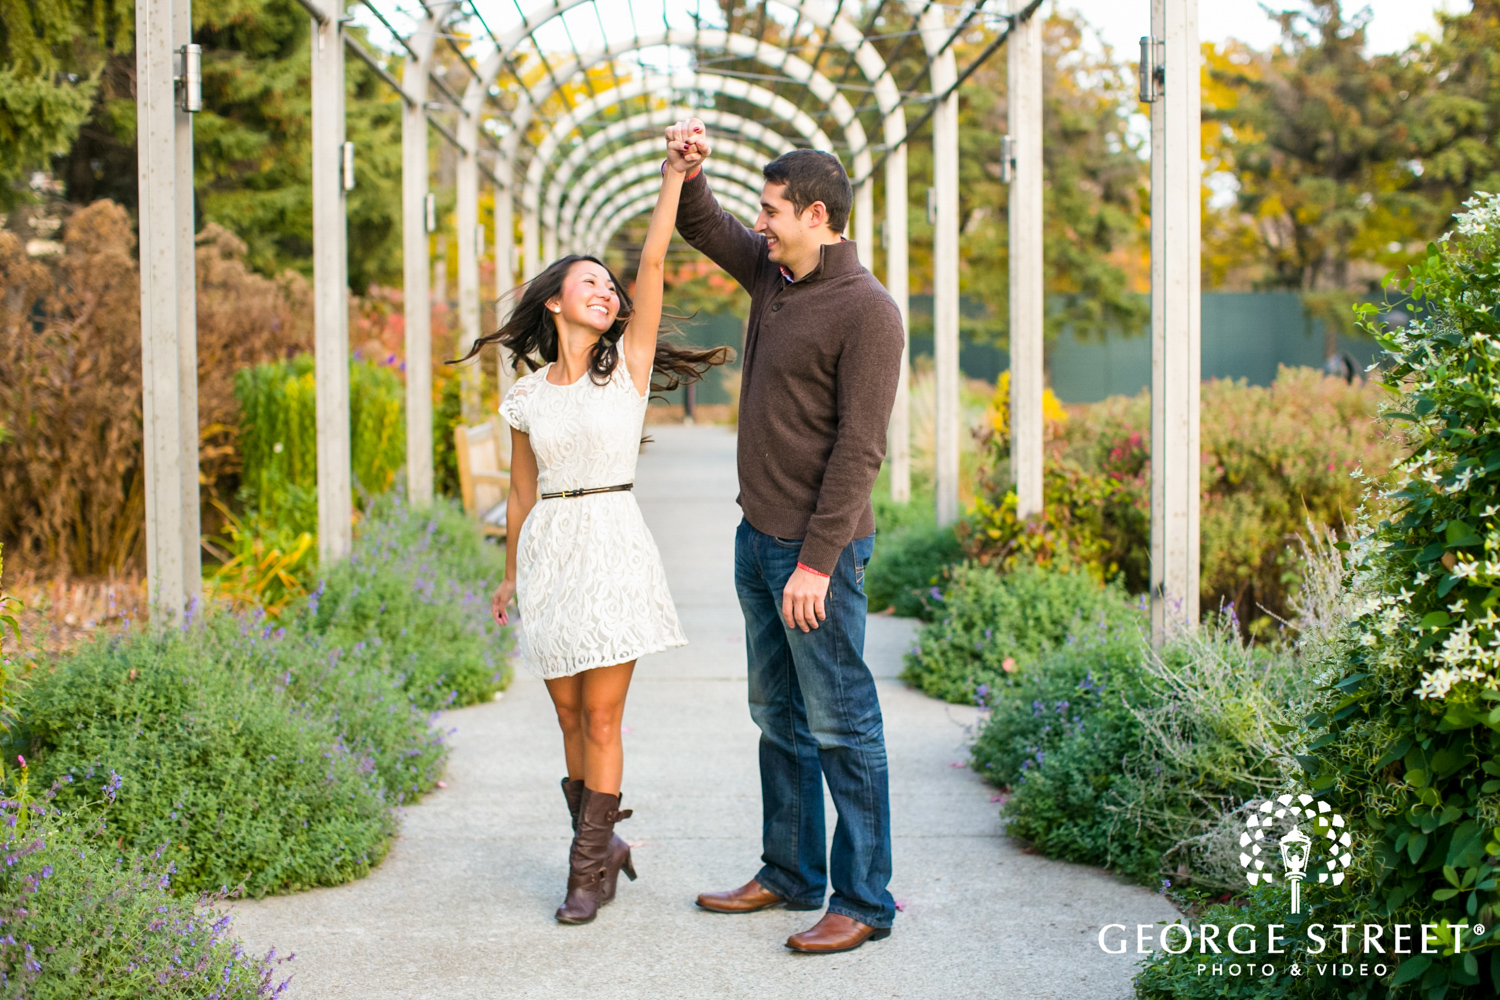 Our Favorite Midwest Engagement Locations